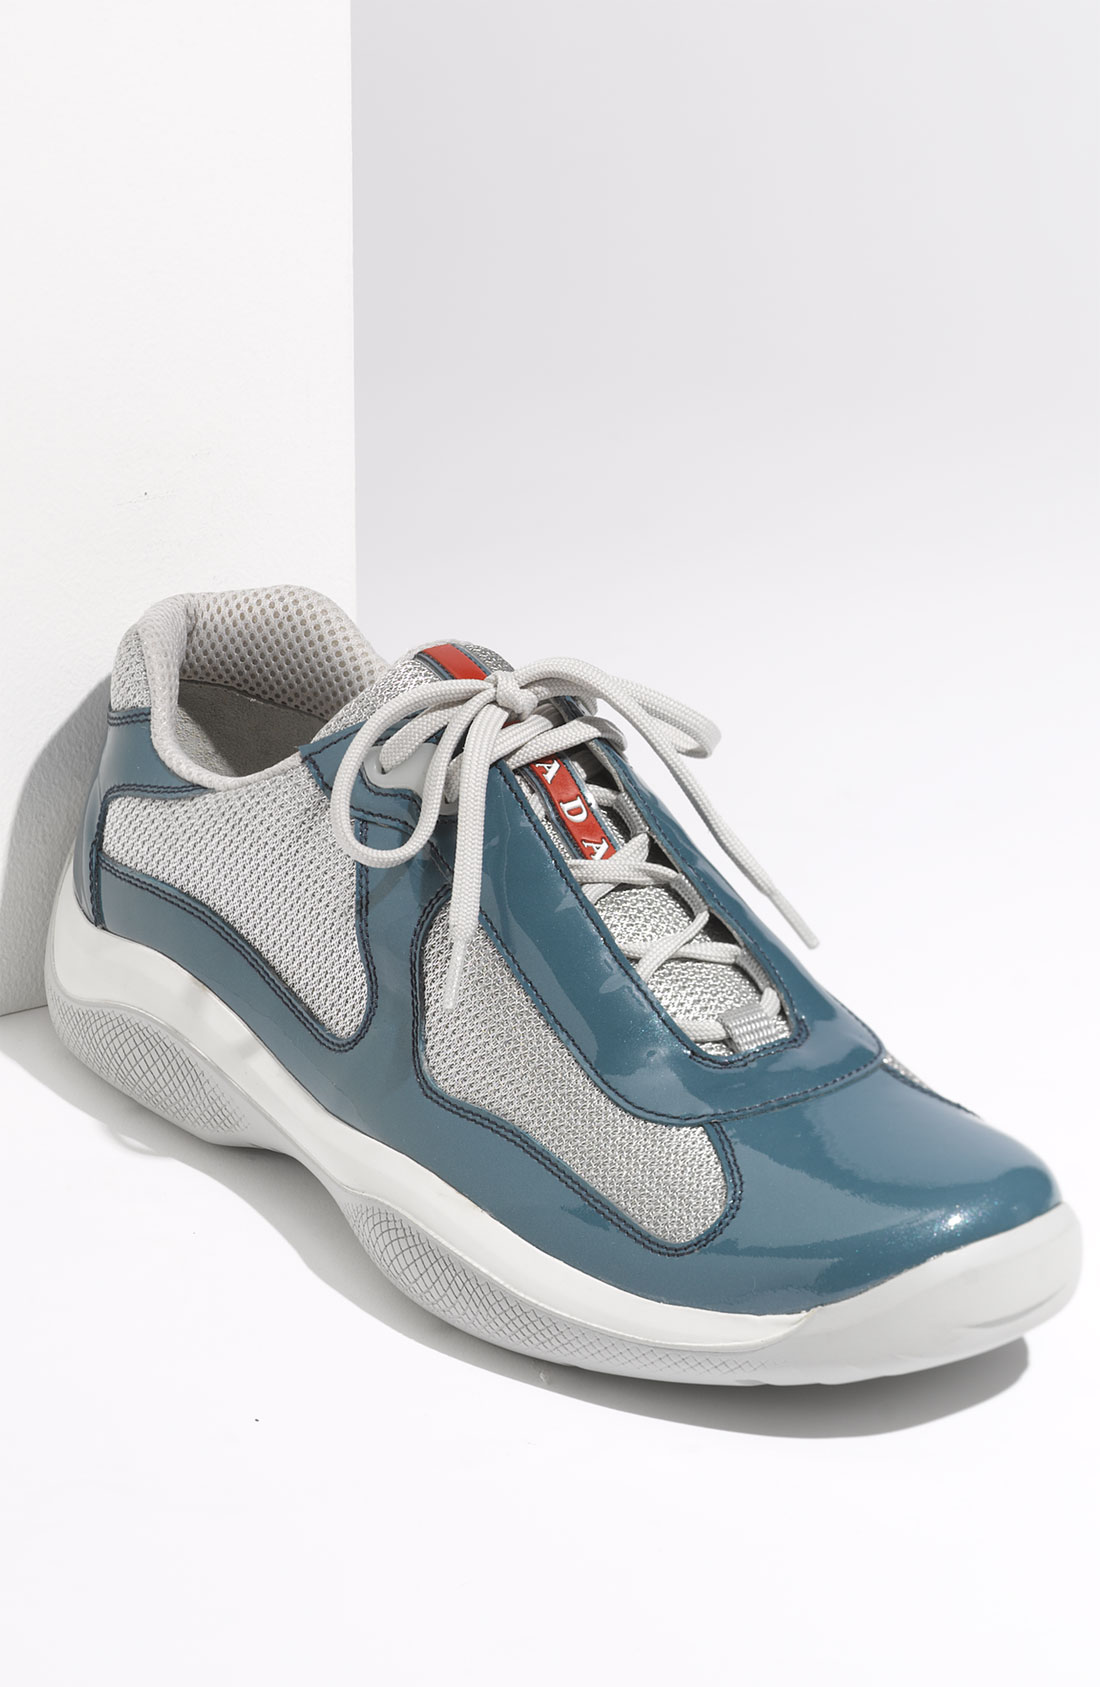 Prada Americas Cup Mesh & Leather Sneaker in Blue for Men (teal patent/ silver) | Lyst